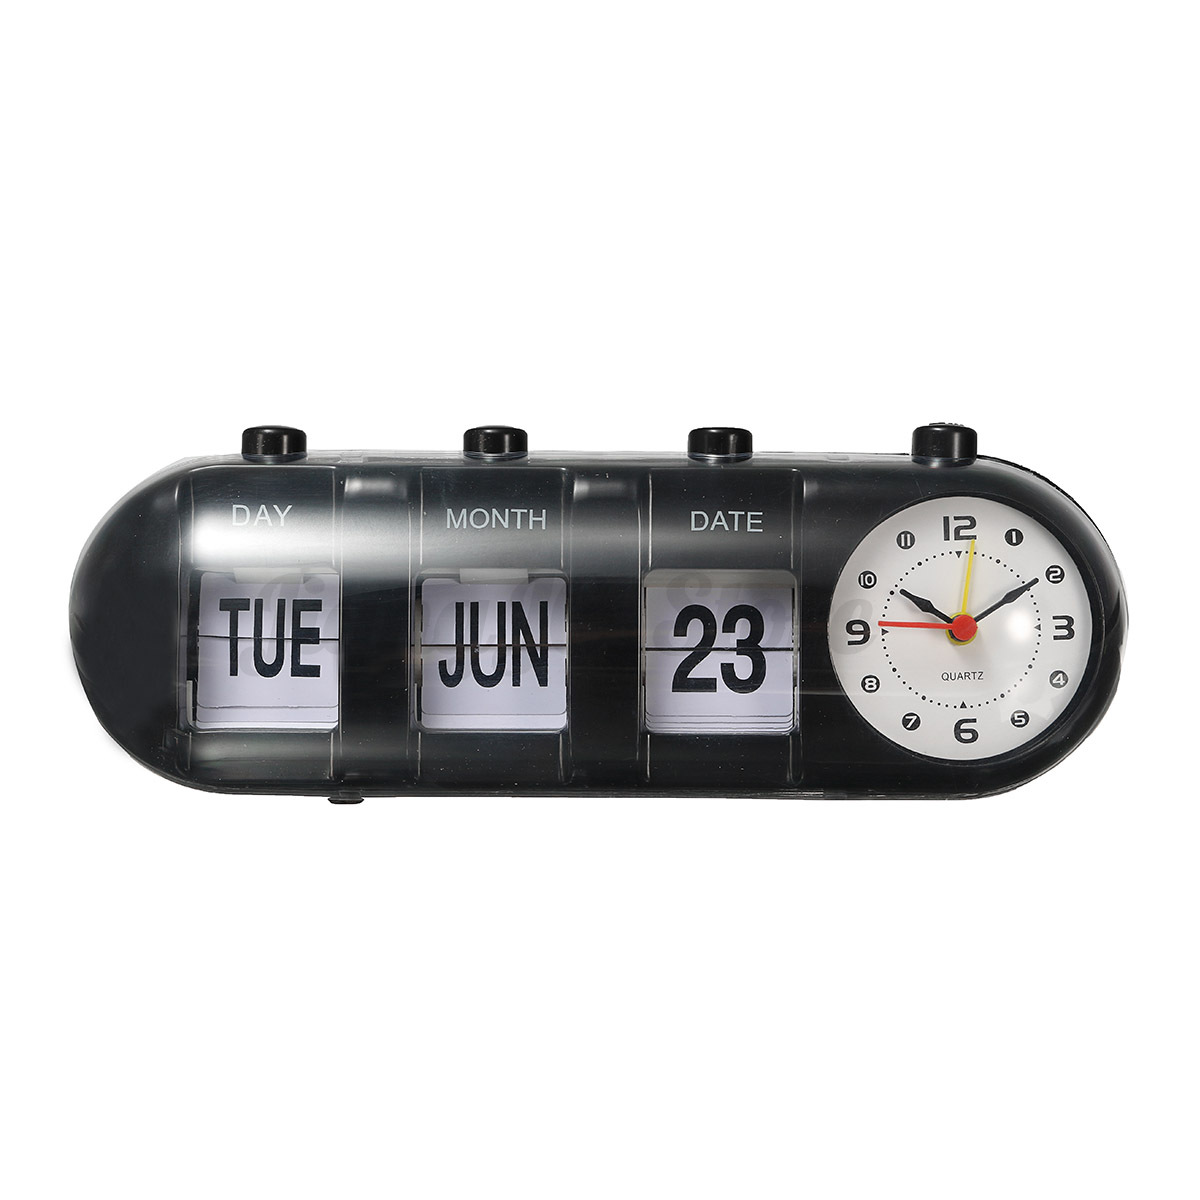 retro manual flip digital quartz alarm clock calendar time home desk table decor ebay. Black Bedroom Furniture Sets. Home Design Ideas